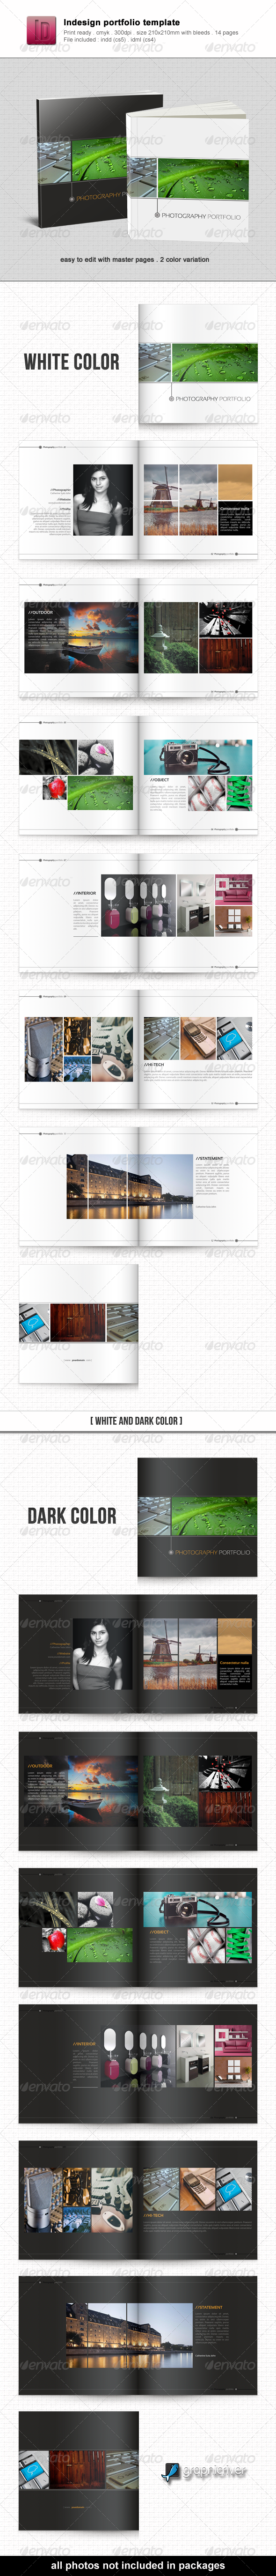 GraphicRiver Indesign Portfolio Template 5448728